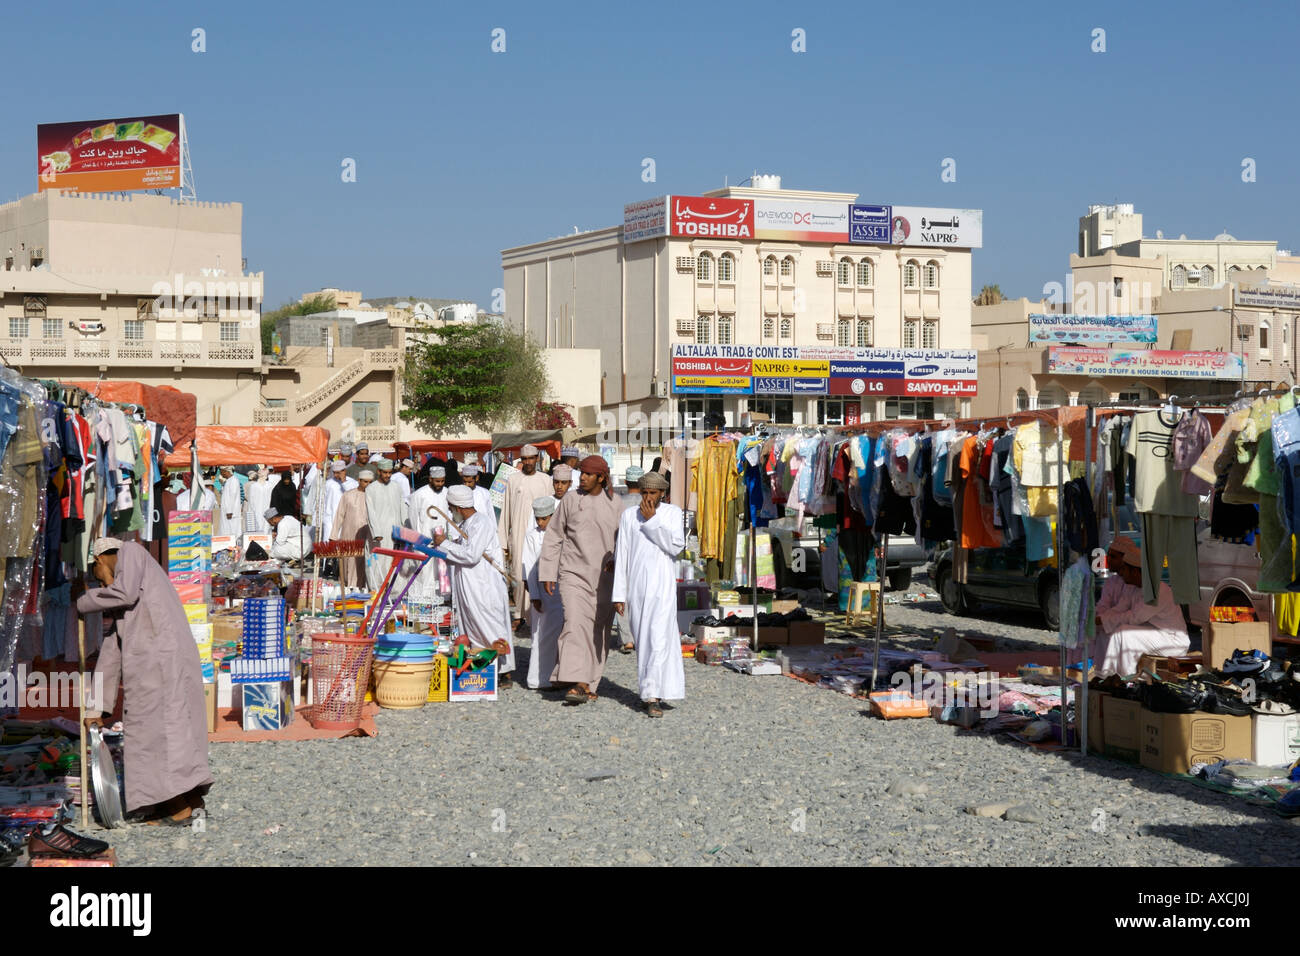 The outdoor souk in the town of Nizwa in the Sultanate of Oman. - Stock Image